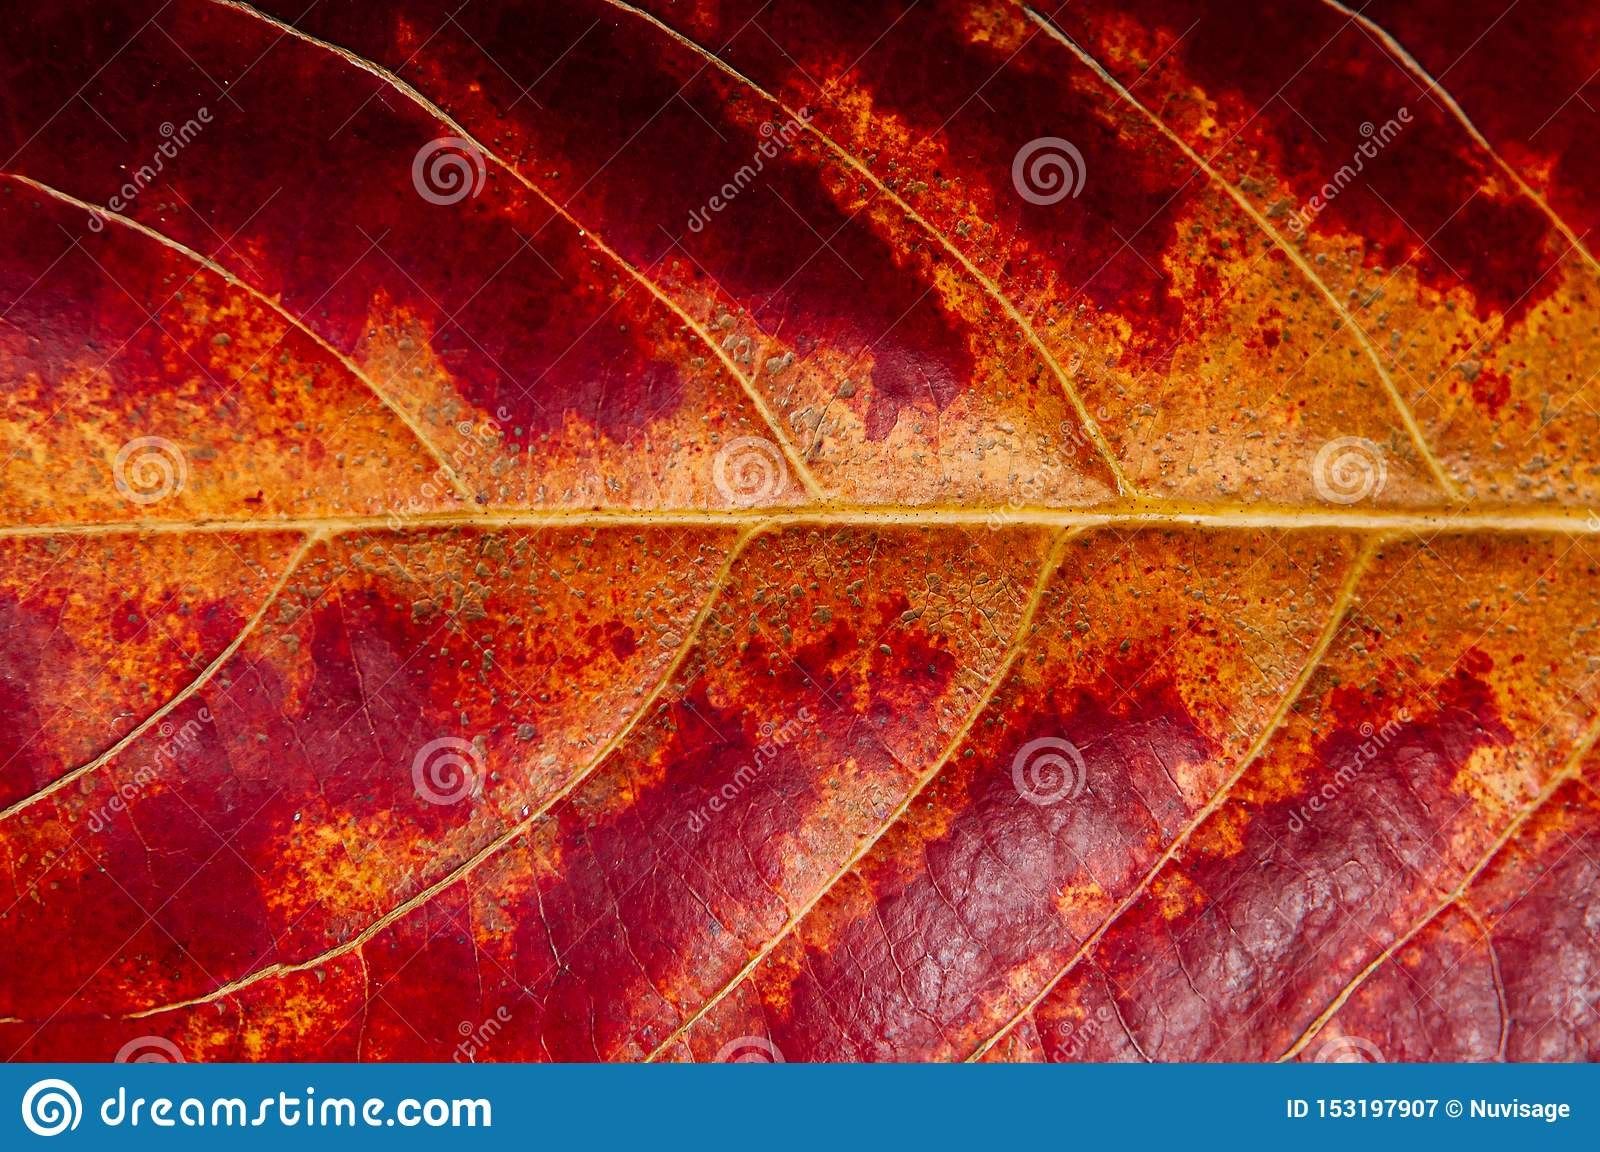 Macro Close Up Red Yellow Autumn Leaf Detail With Veins